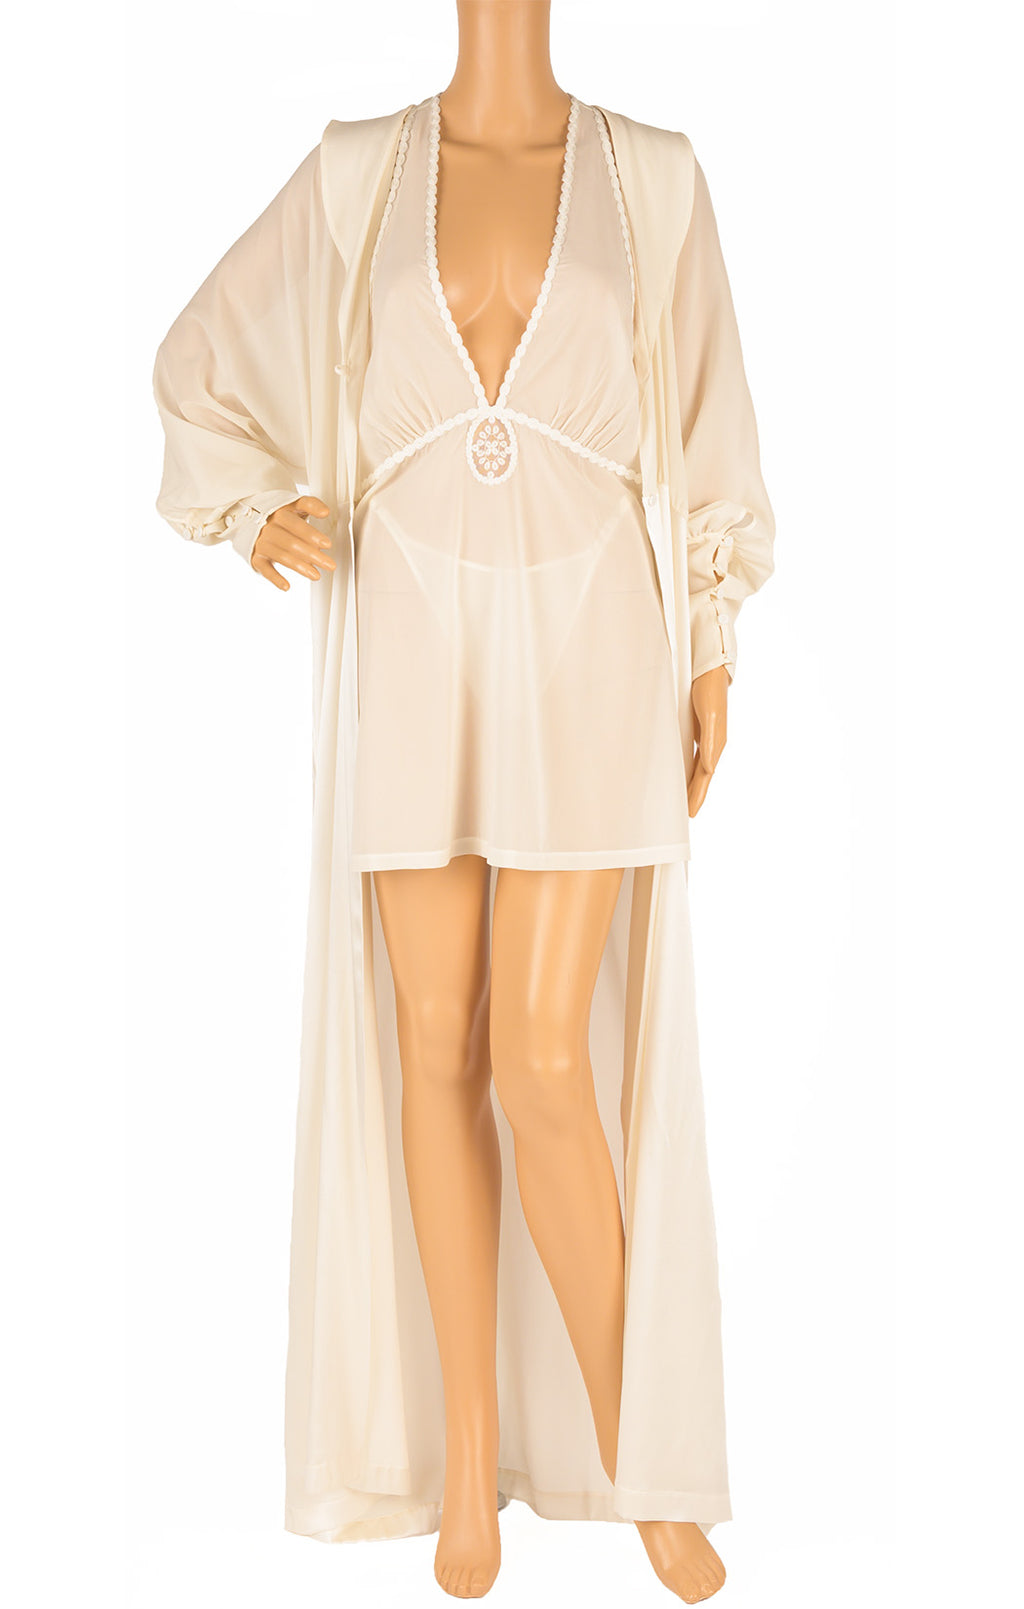 Front view of LA PERLA with tags Robe, nightgown and panty Size: Medium